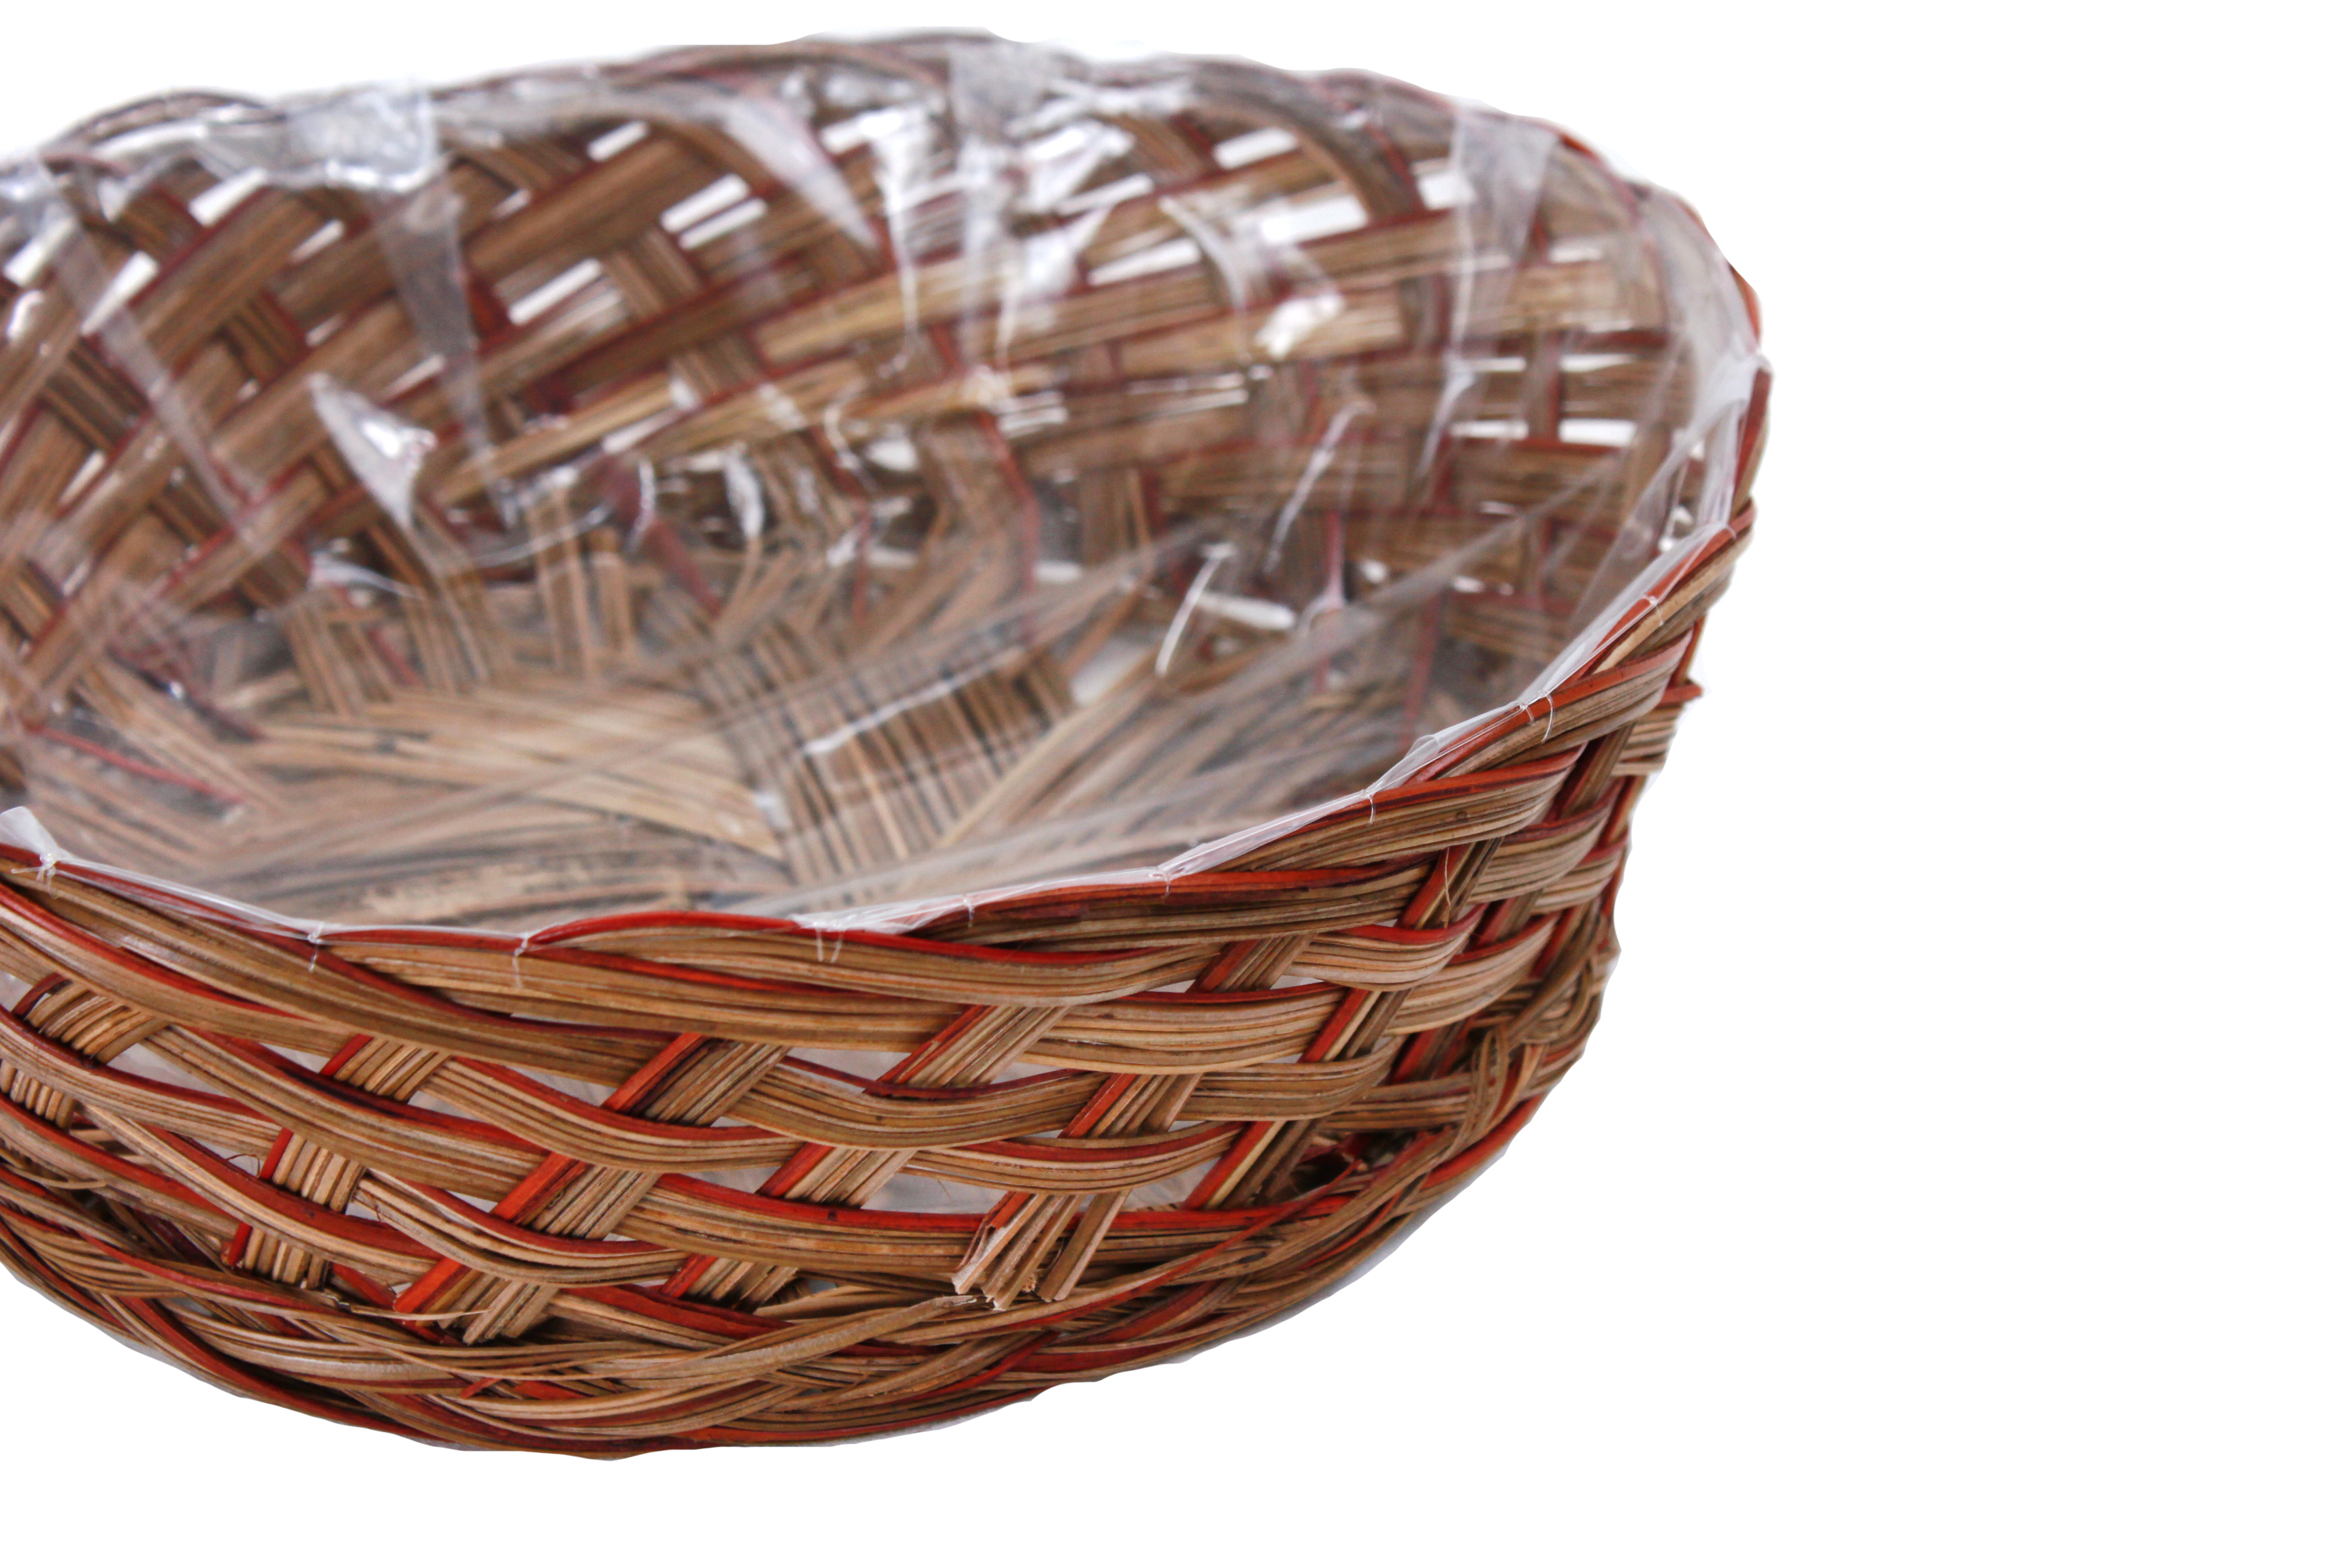 Round 2-Tone Baskets With Plastic Liner close